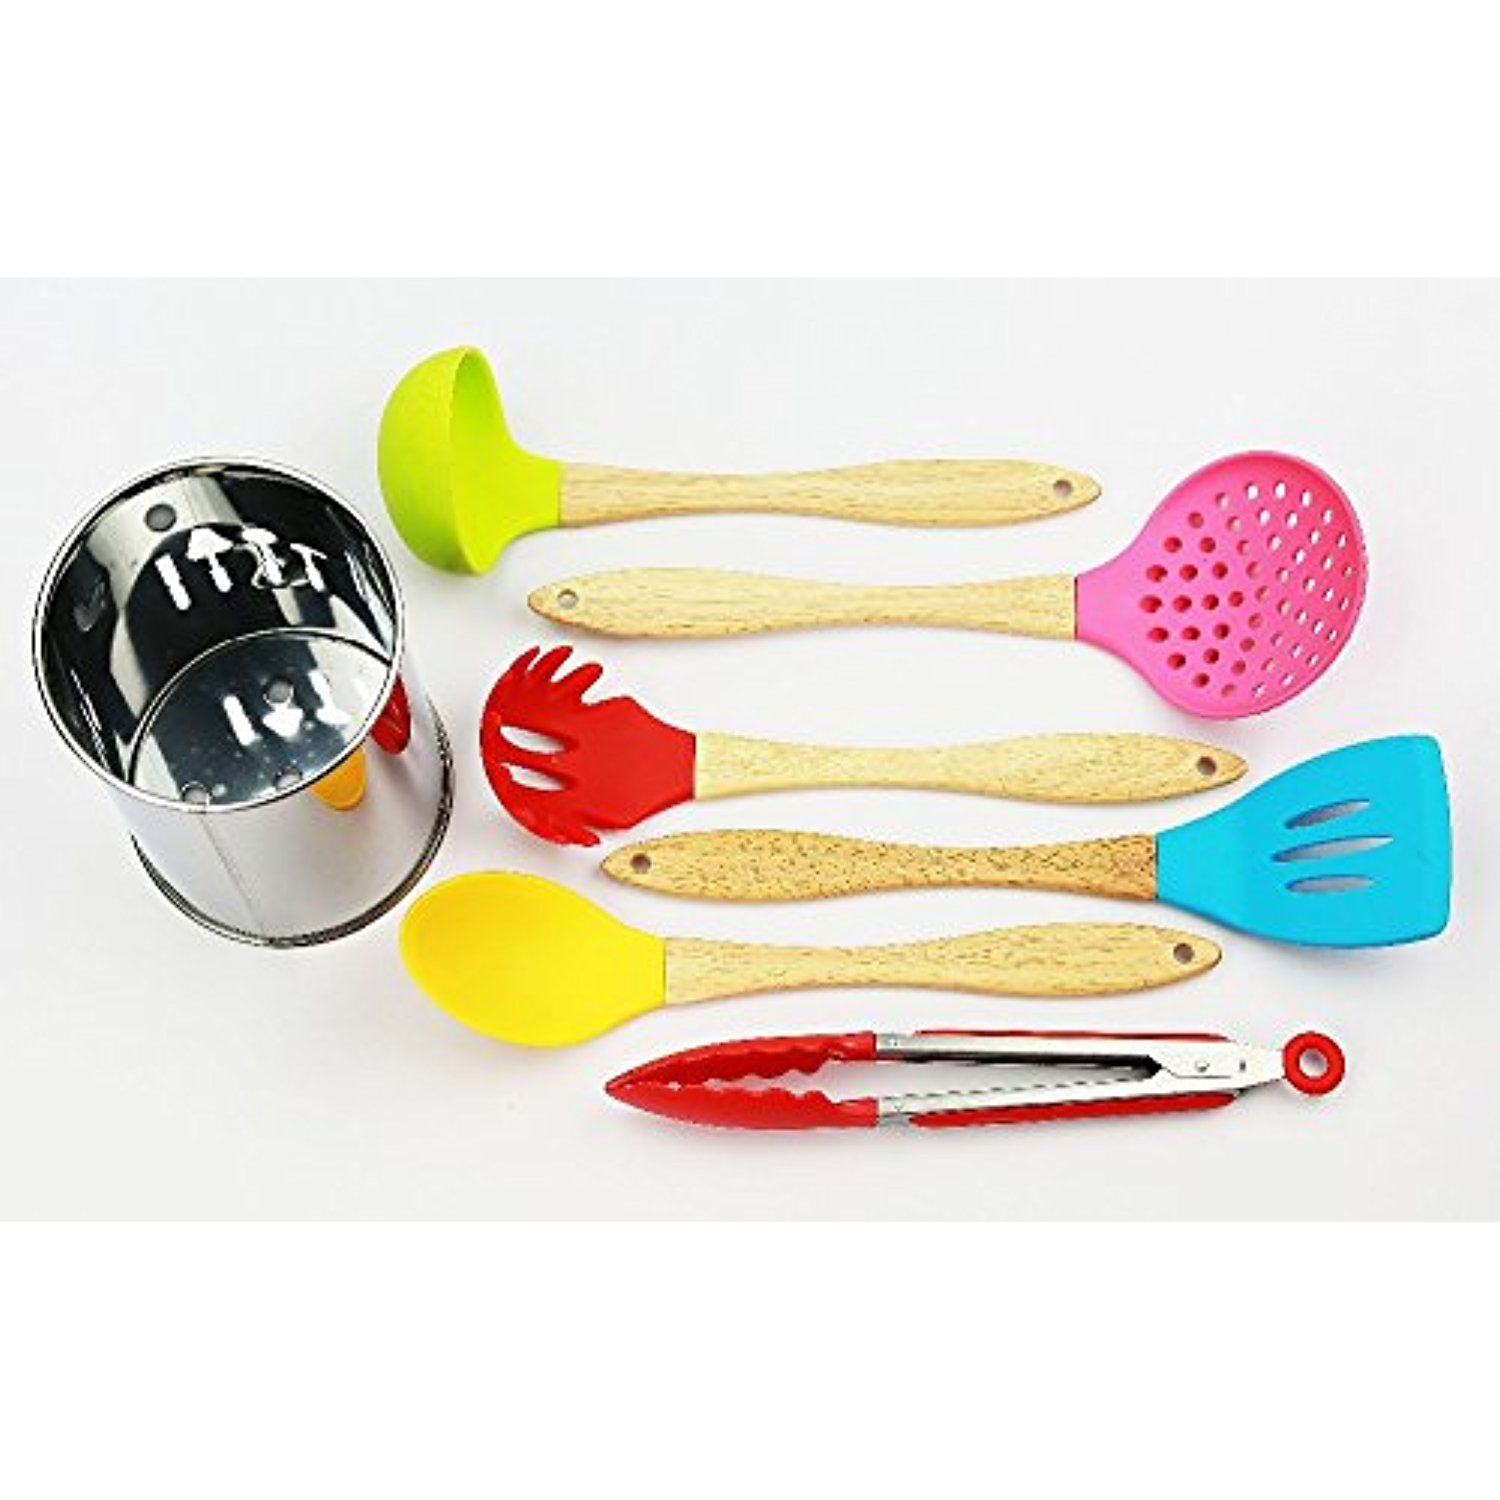 6pcs Silicone Kitchenware With Holder Cooking Tools Kitchen